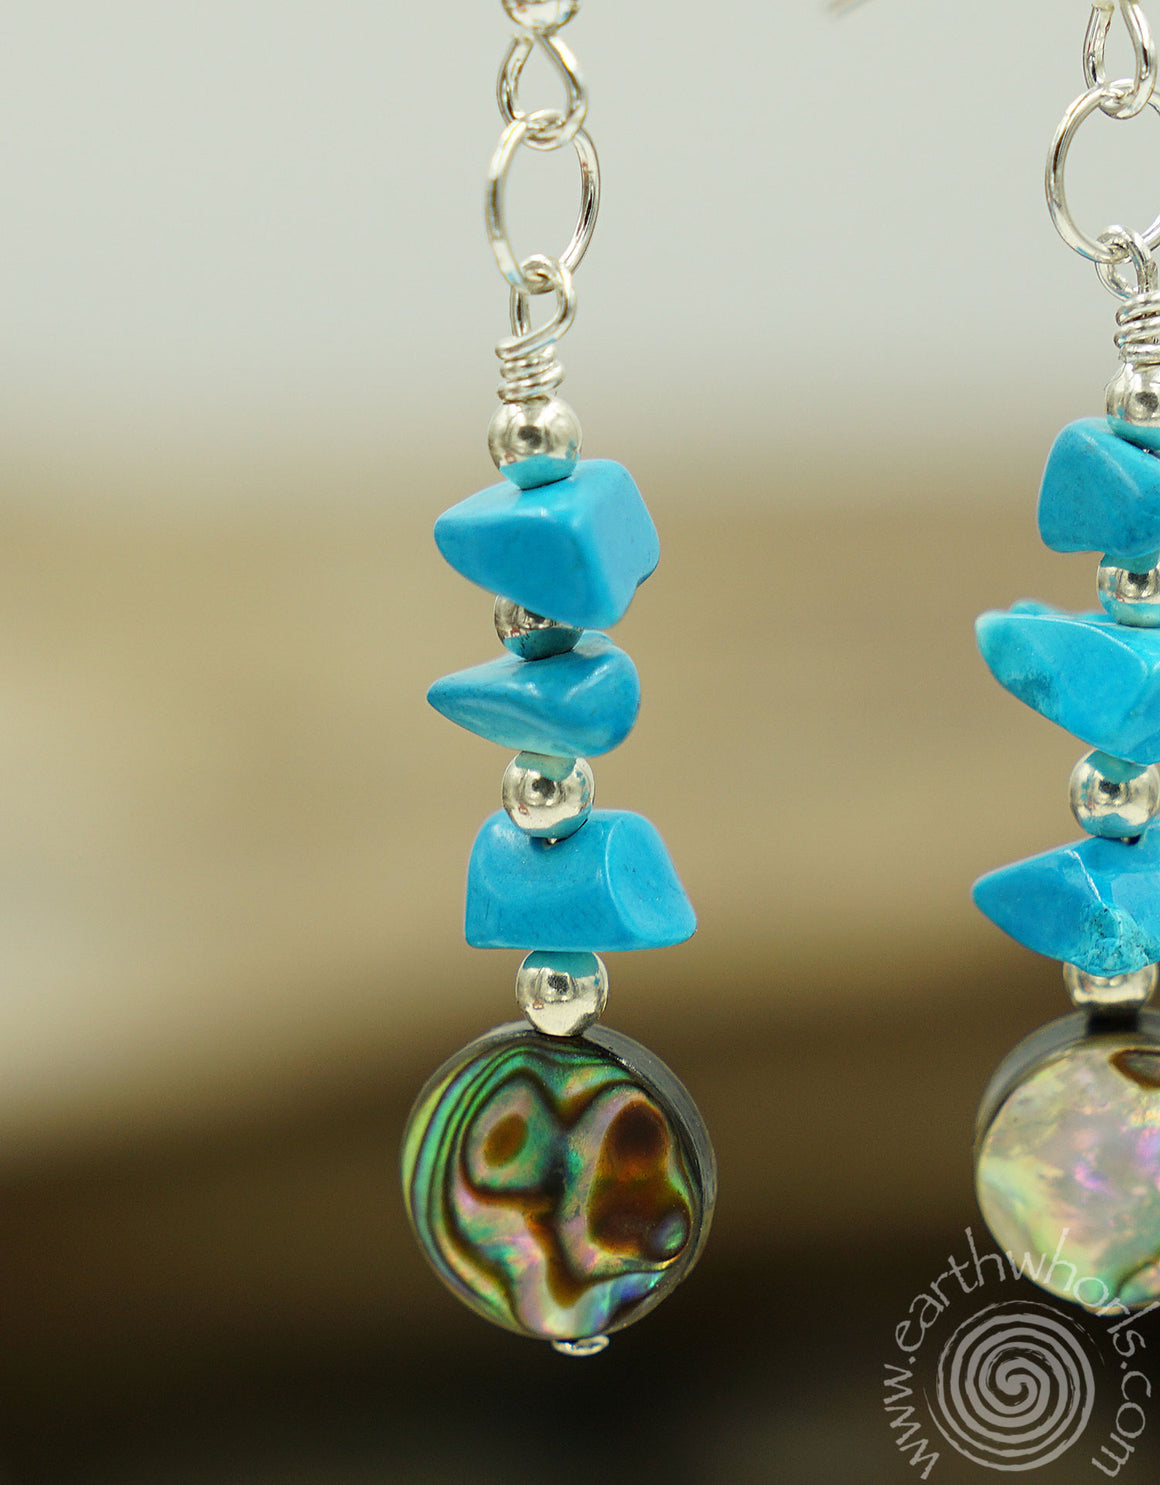 Turquoise, Abalone & Sterling Silver Earrings - EarthWhorls, LLC